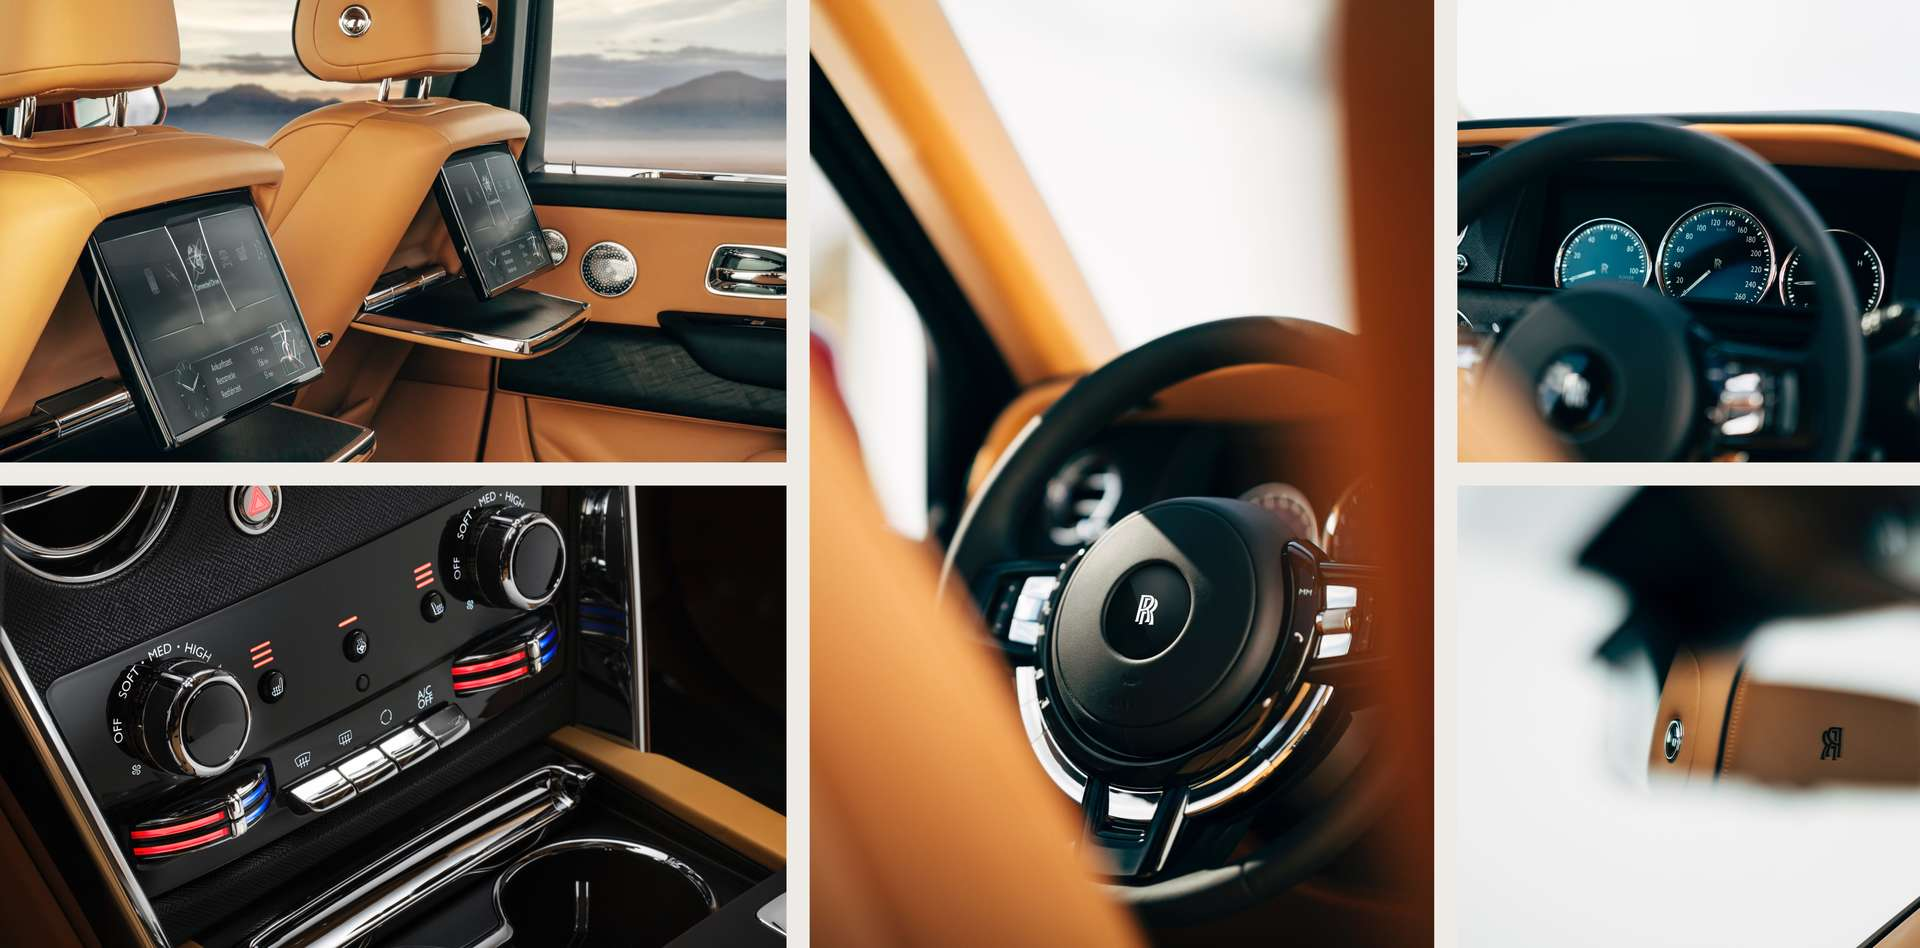 Multiple images of the interior of a Rolls-Royce Cullinan motor car